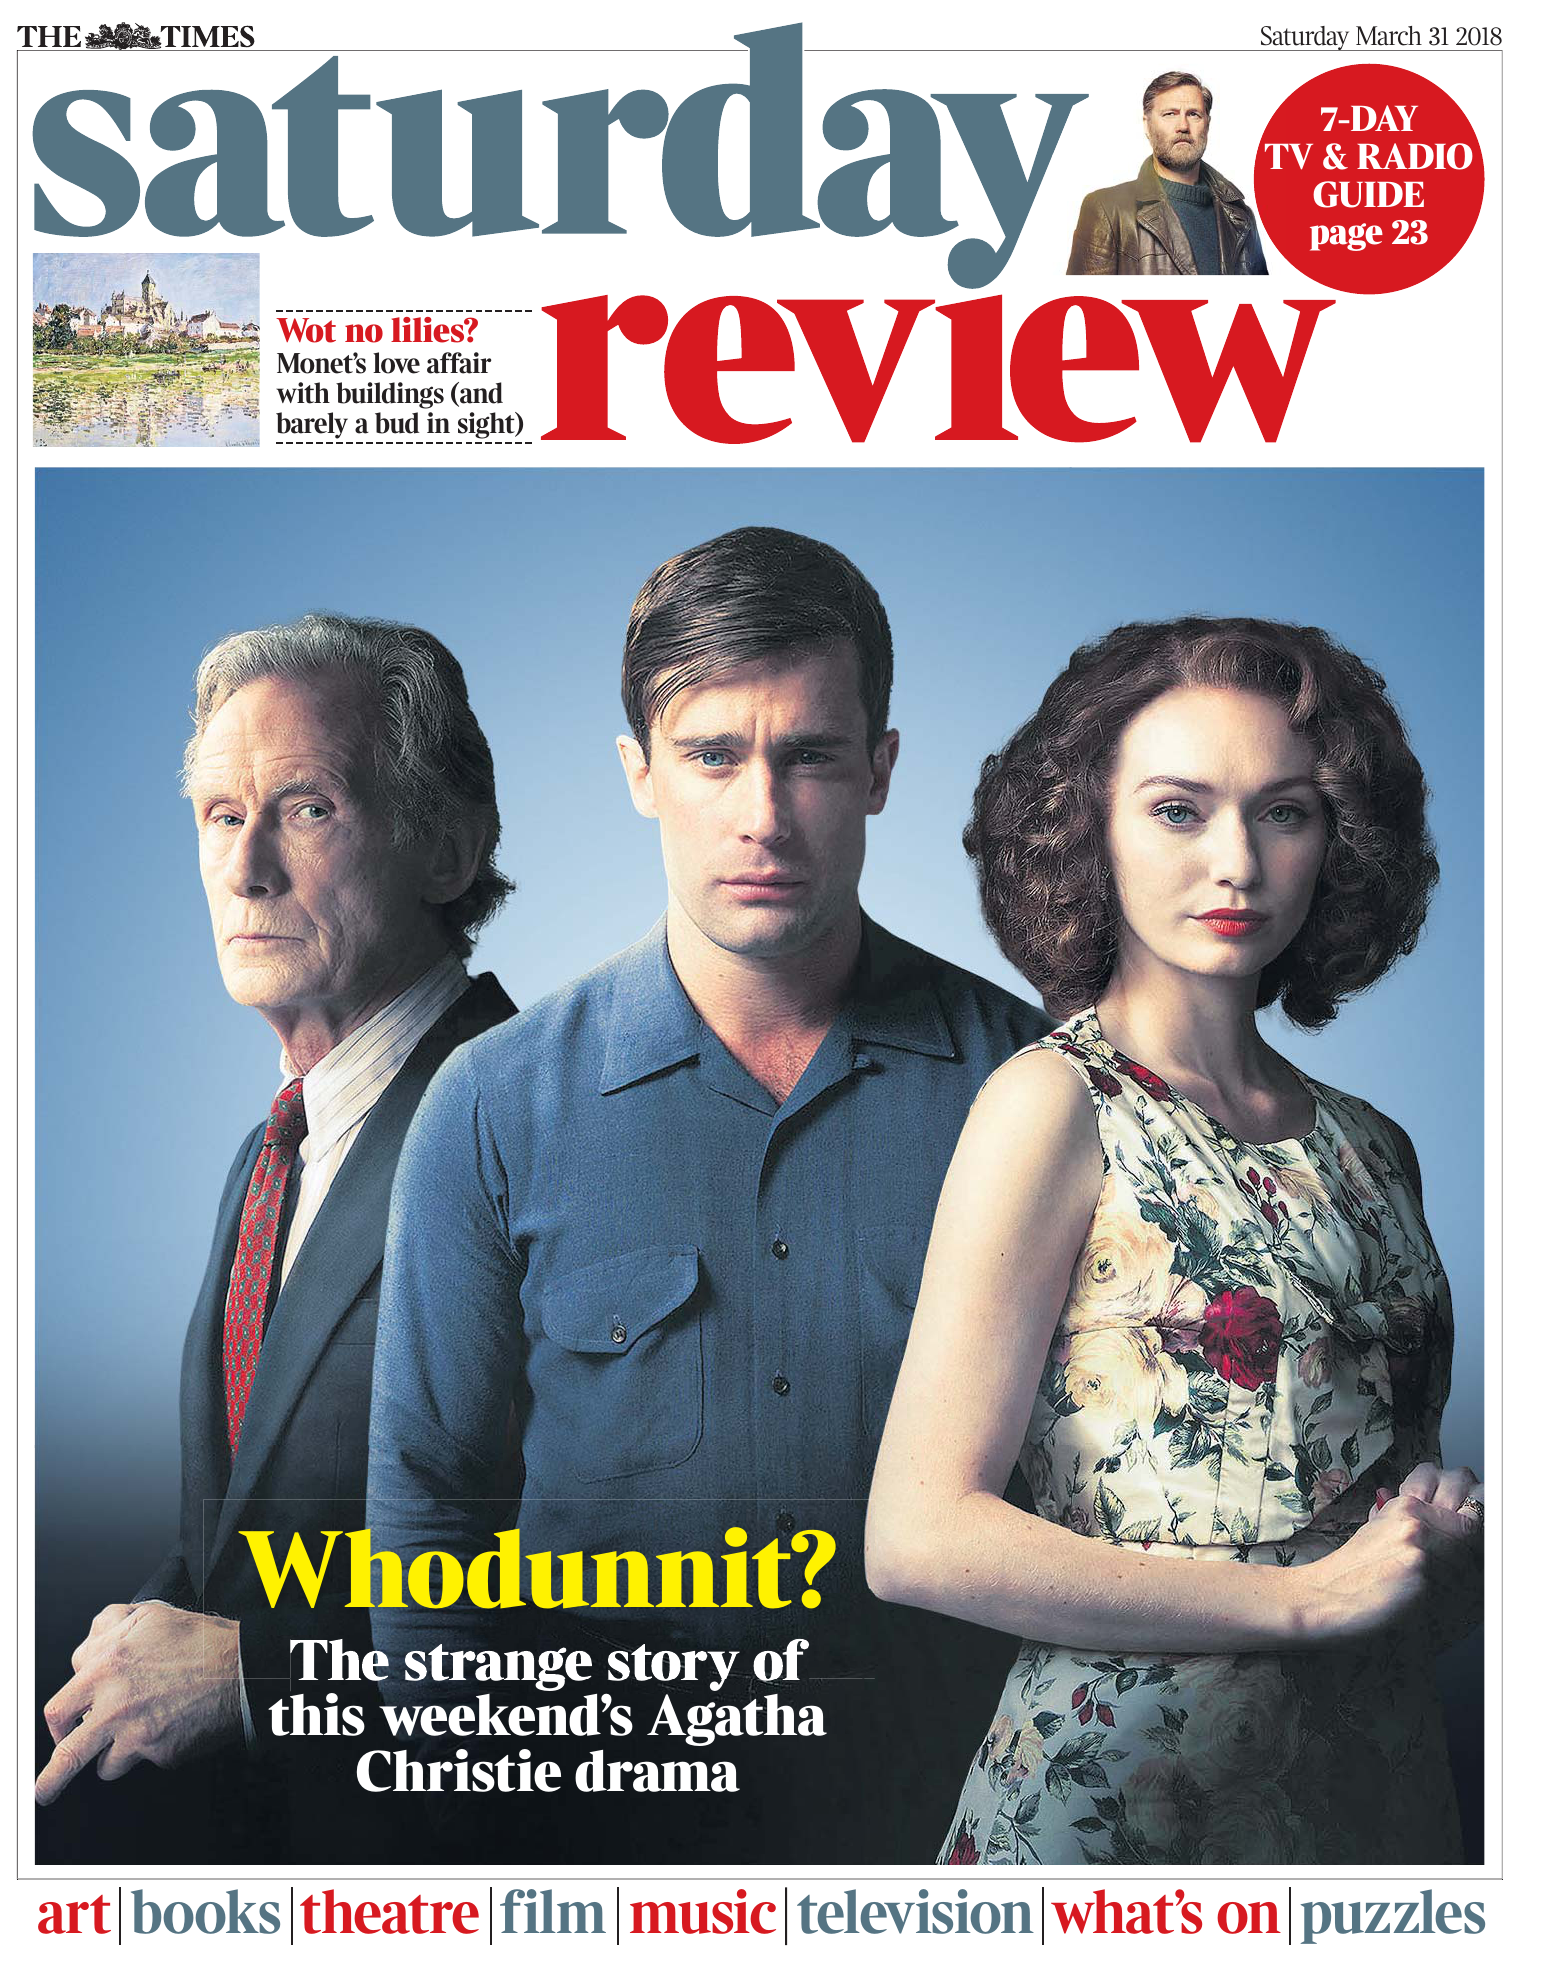 The Times Saturday Review 31 March 2018